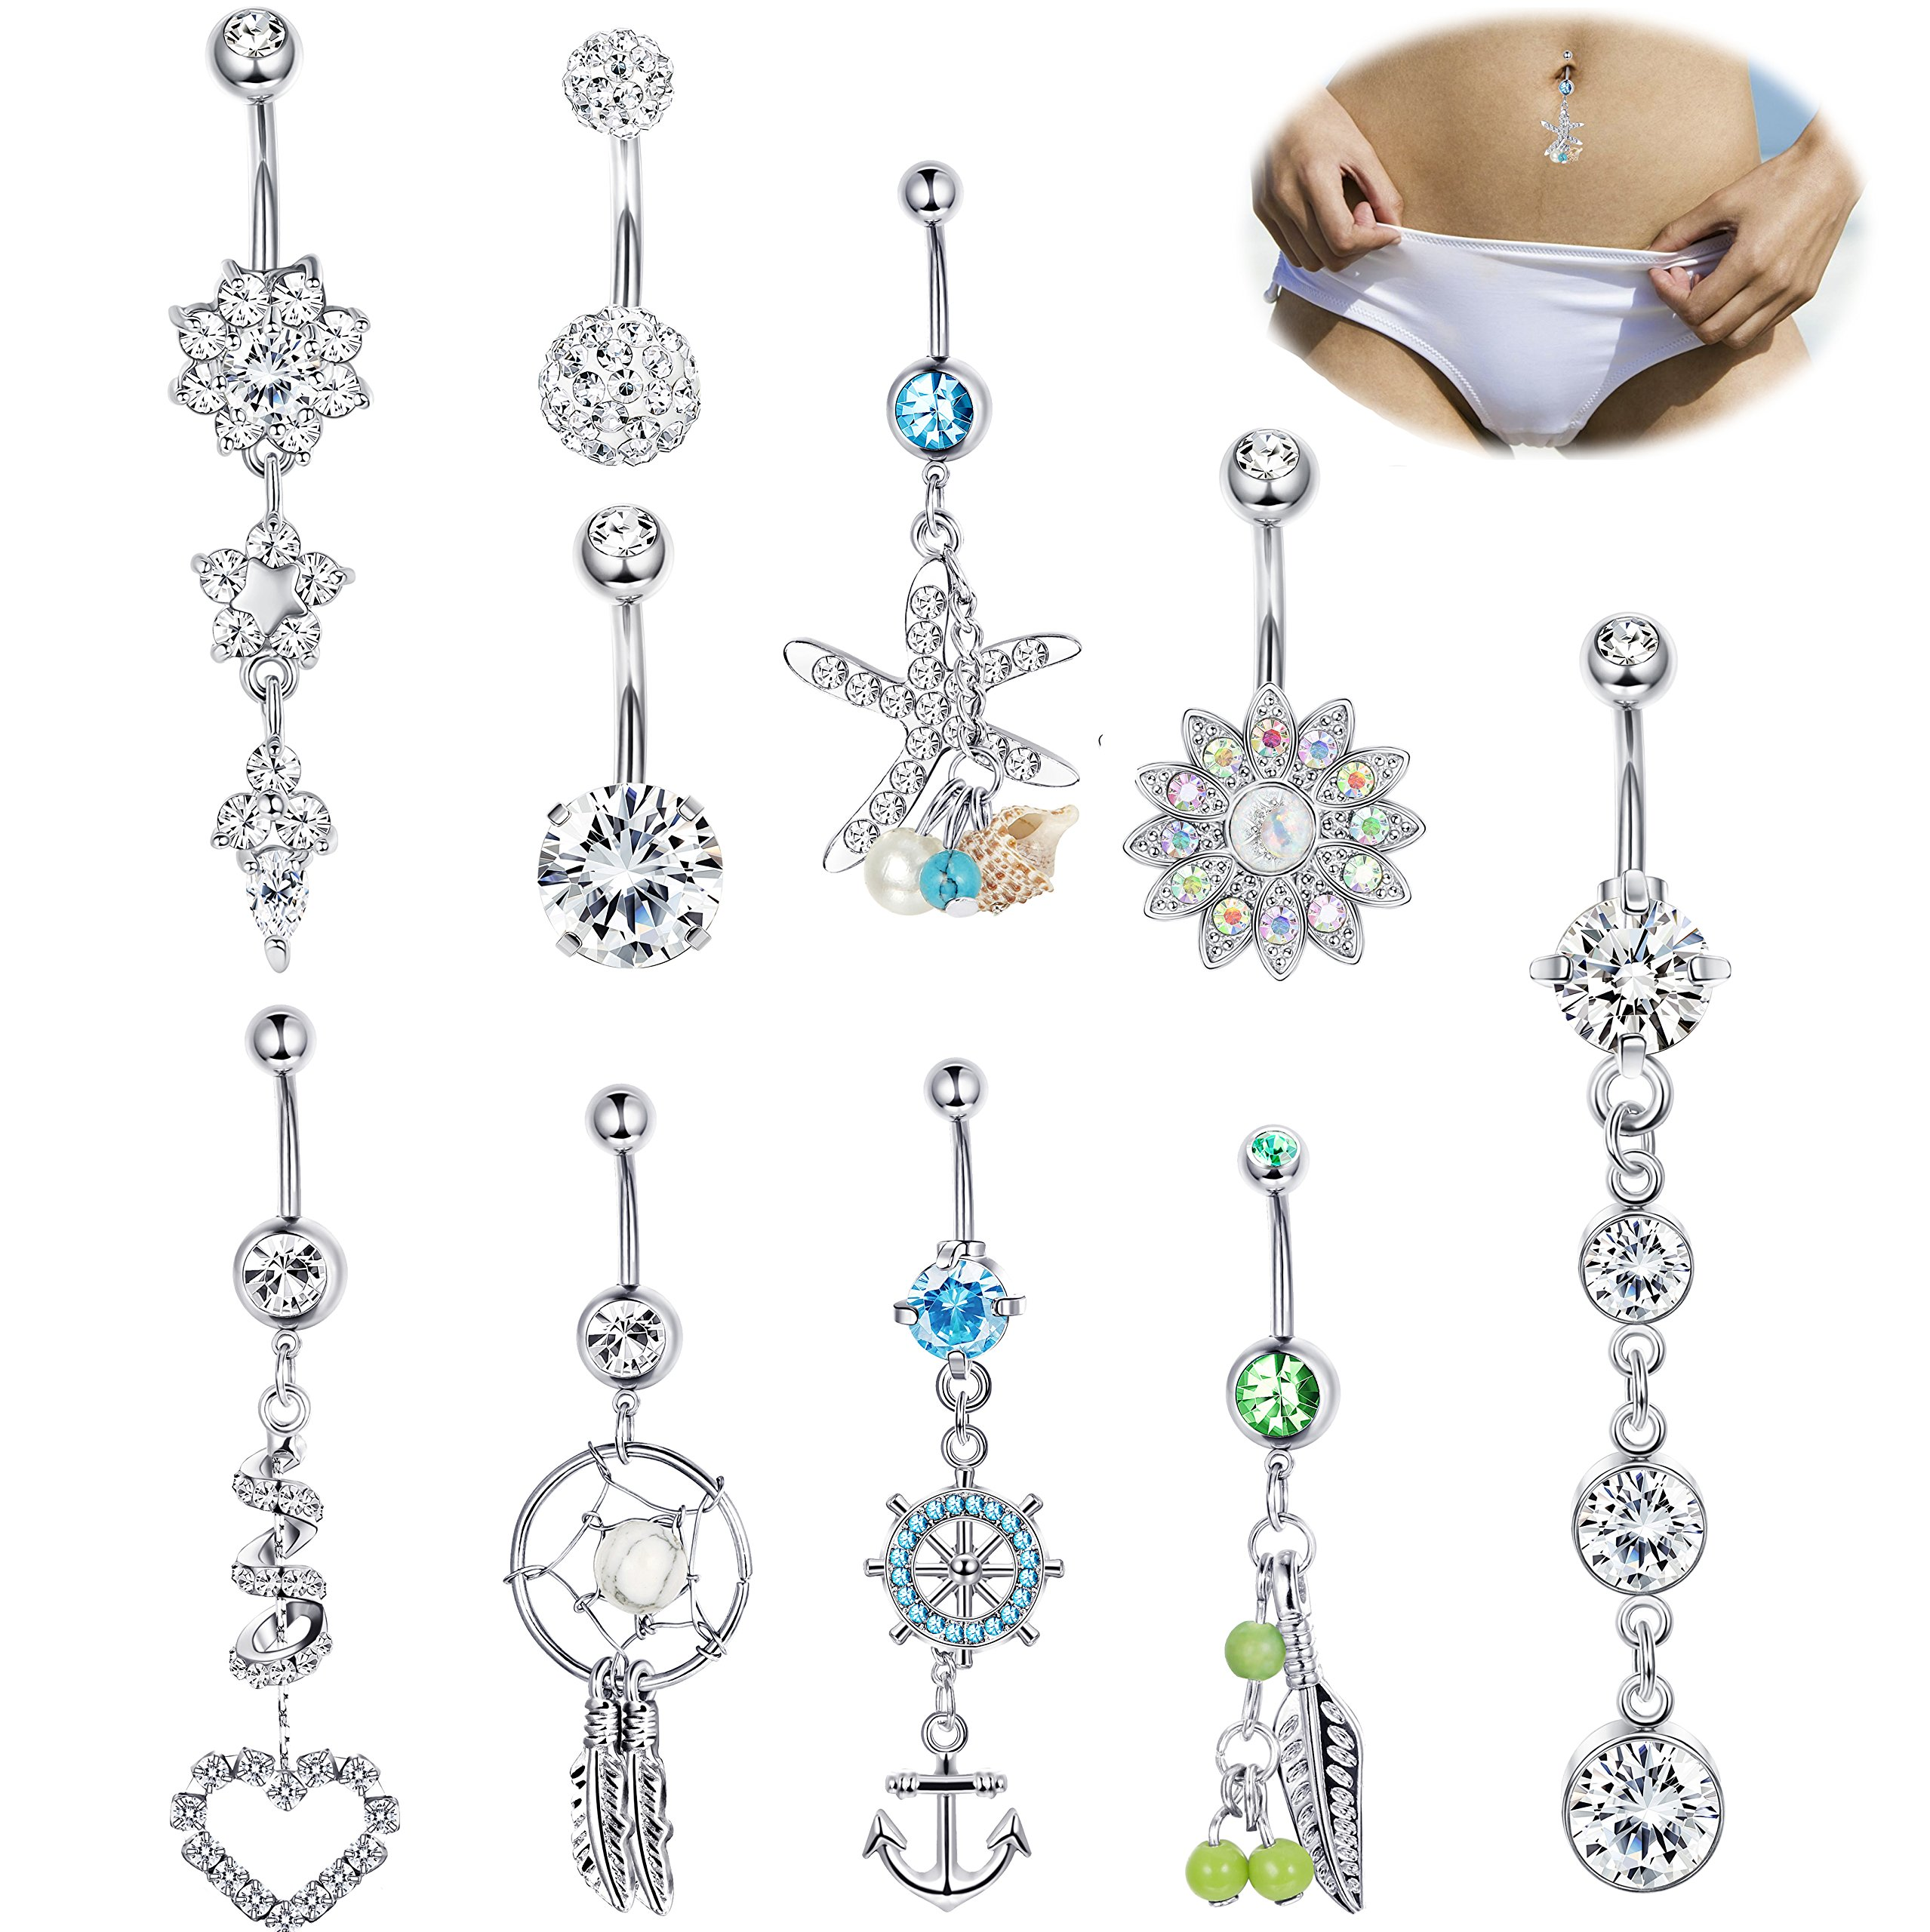 Jstyle 4 Pcs Stainless Steel Dangle Belly Button Rings Navel for Women Curved Barbell Piercing 14G CZ Piercing Set (F:10 Pcs Silver-tone)